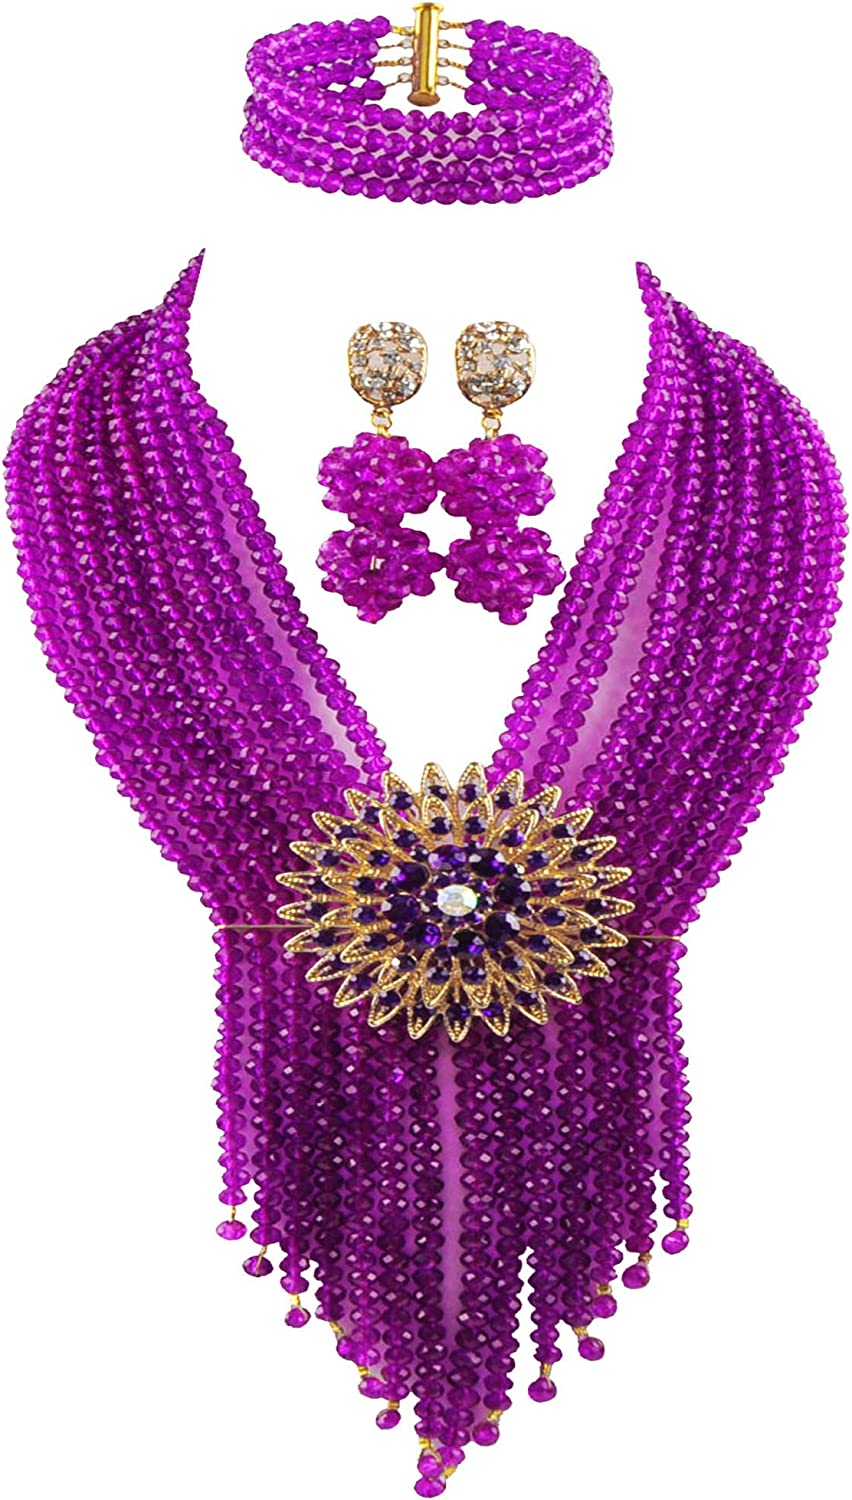 aczuv 8 Selling rankings online shopping Rows Costume African Beads Nigerian Bridal Necklace Wedd